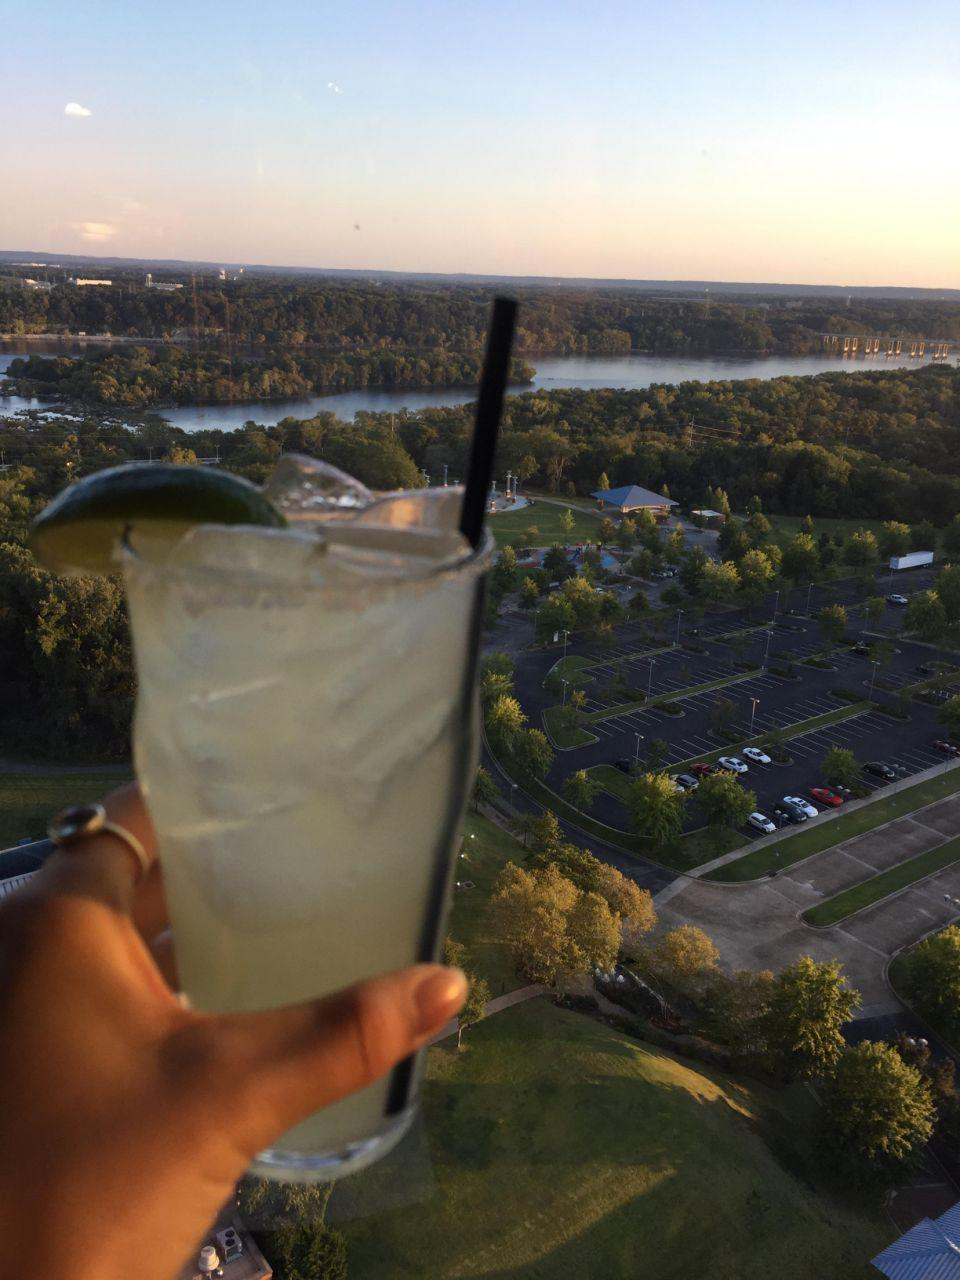 Be stopped for a drink with a stunning view in Alabama, at the top of the revolving restaurant 360 Grille. Breathtaking! Source: Supplied